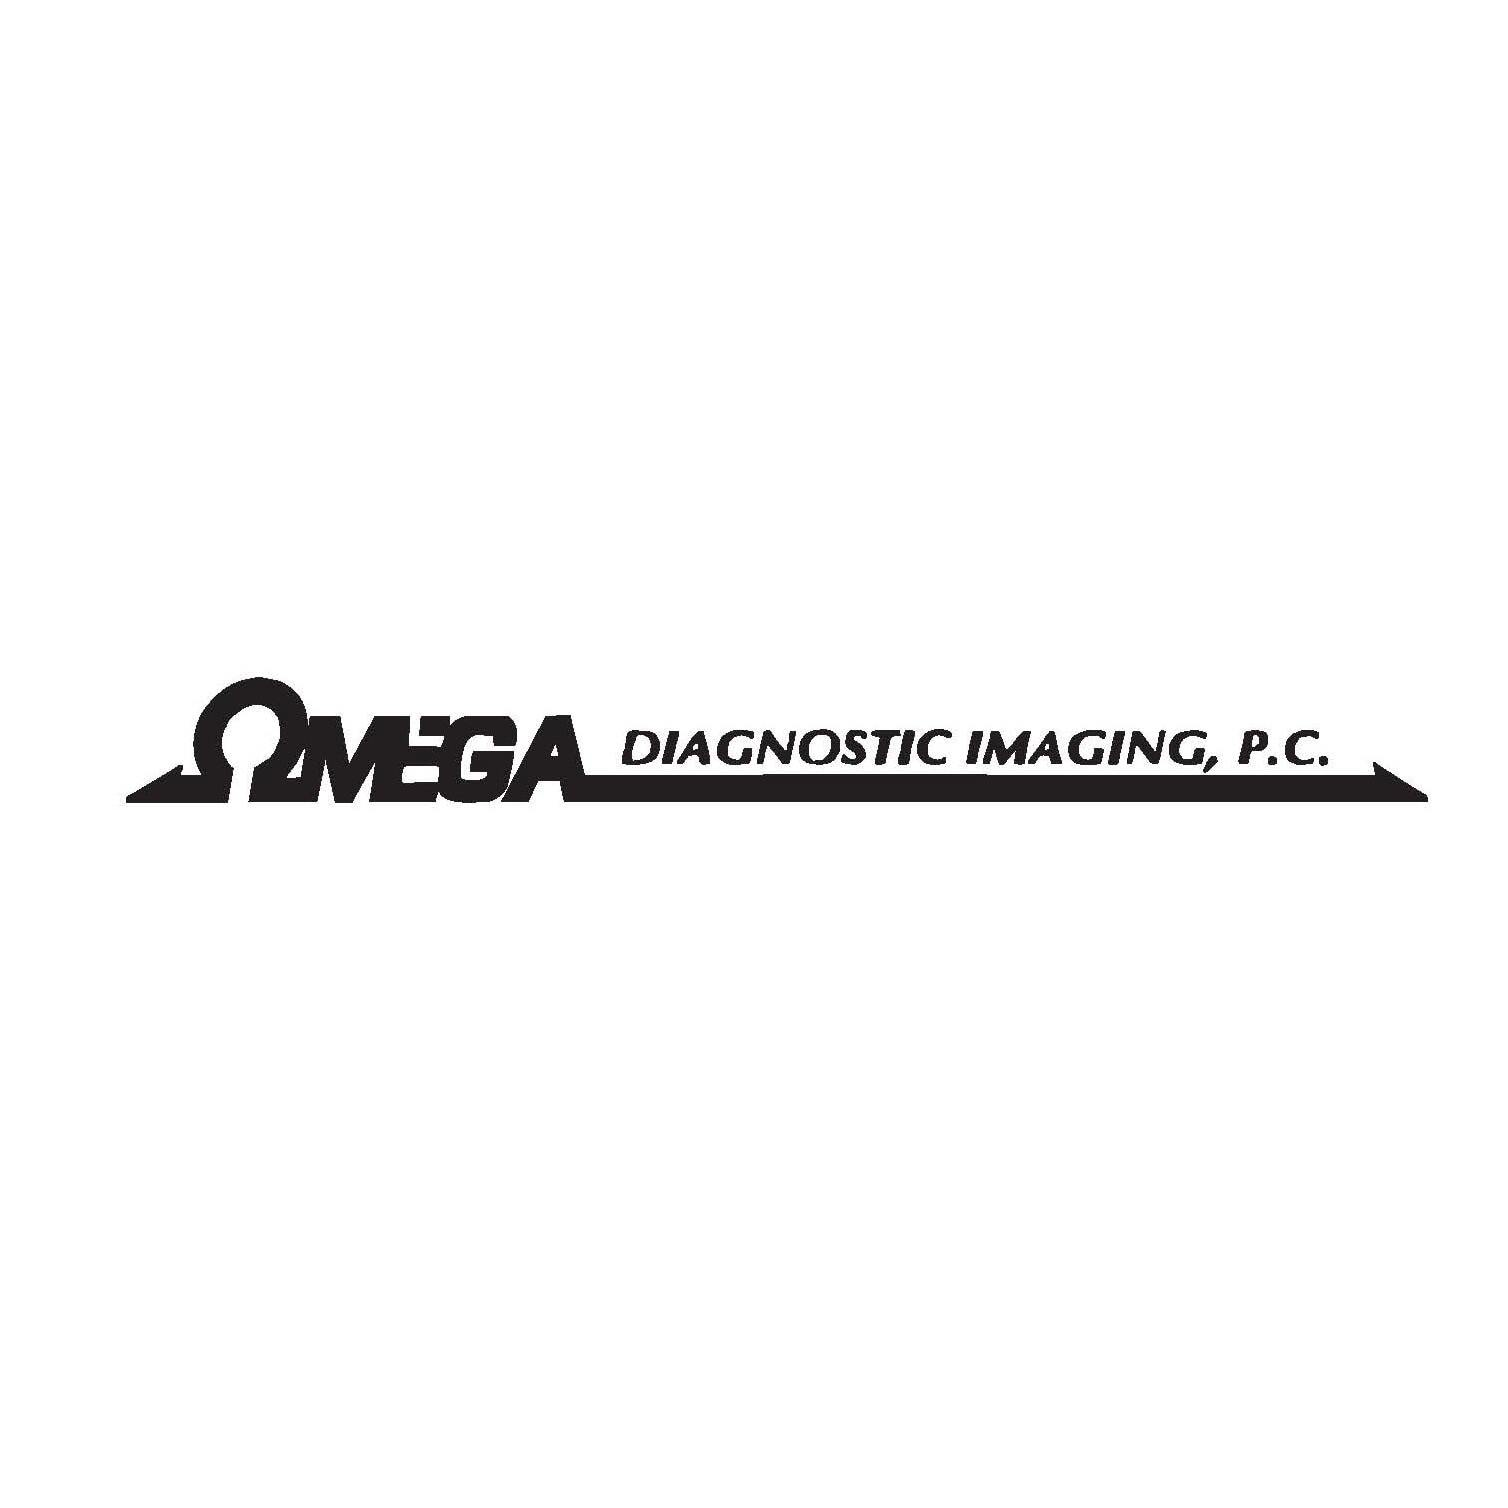 Omega Diagnostic Imaging PC image 0